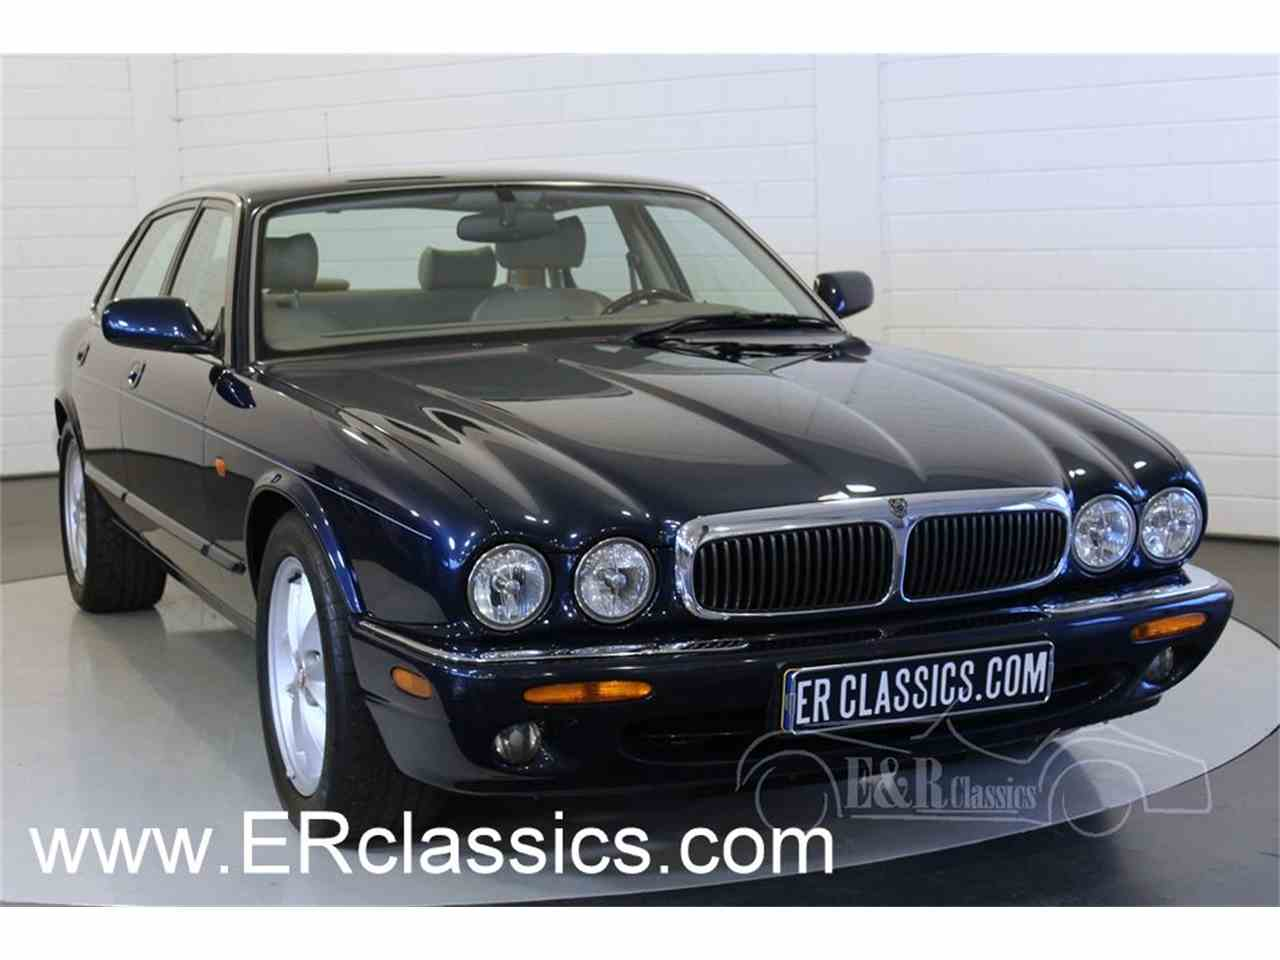 swap sale independence daily jaguar turismo for from boring